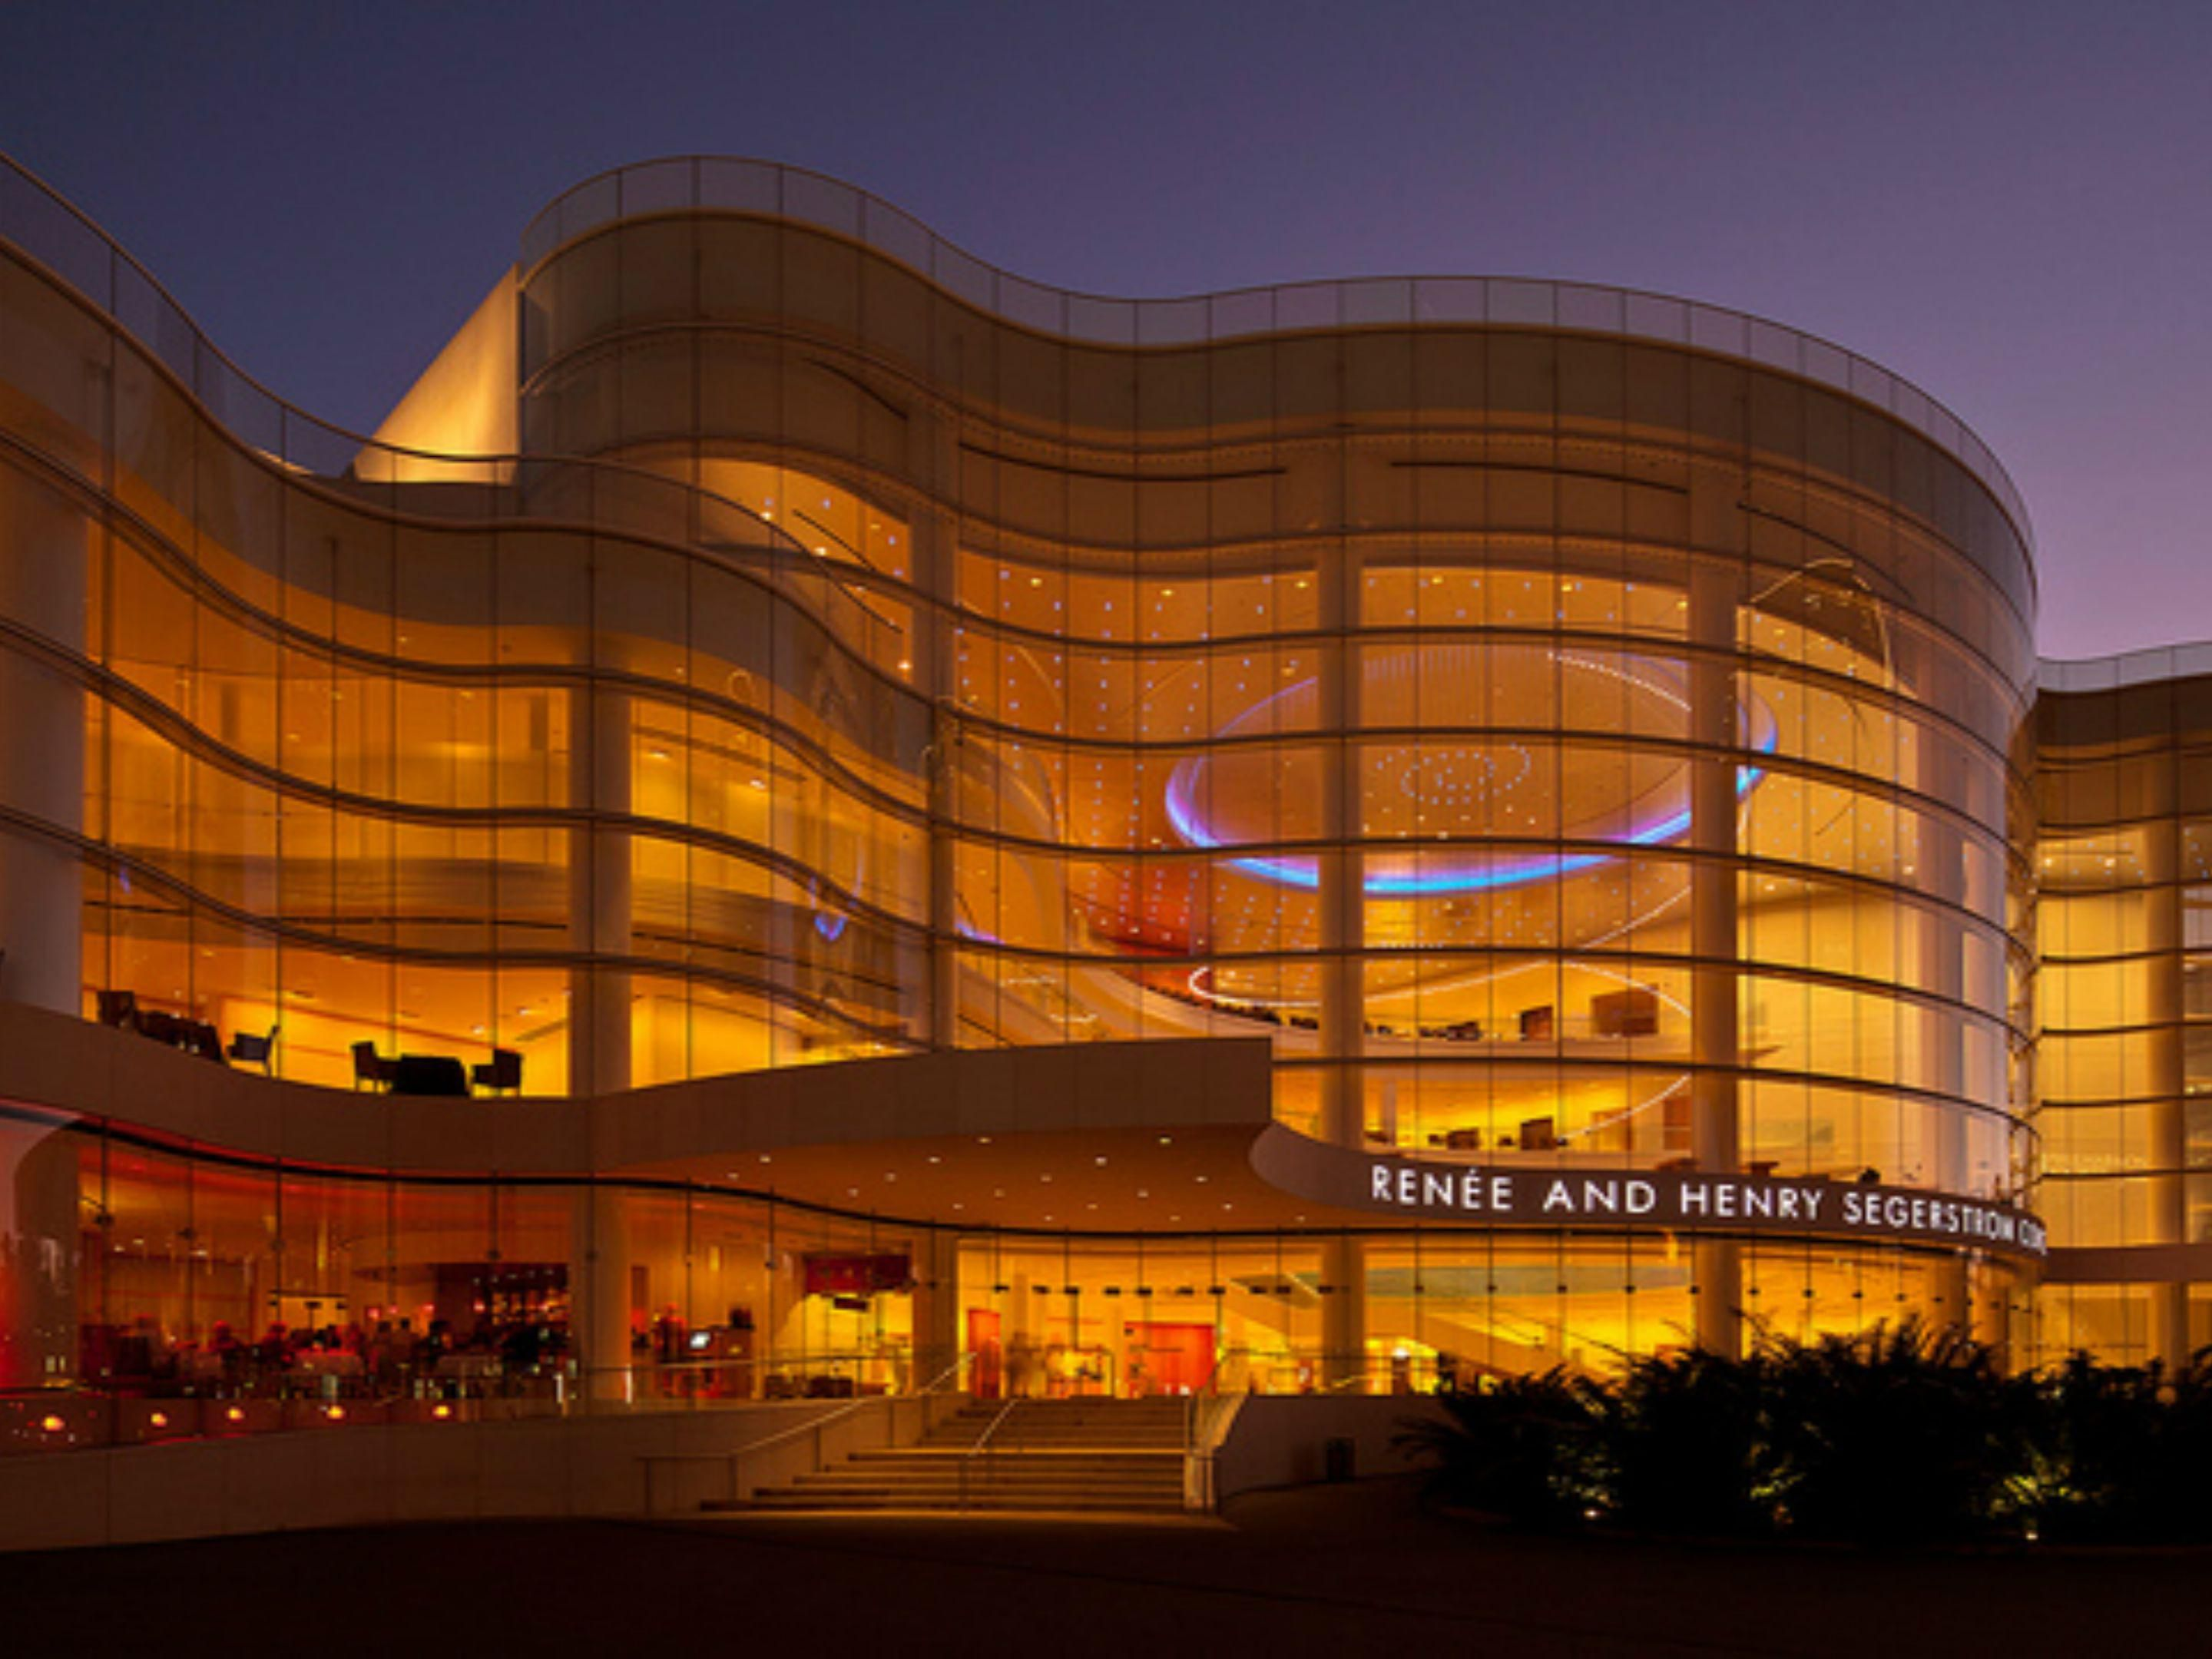 Stay at our Santa Ana hotel for Segerstrom Hall events